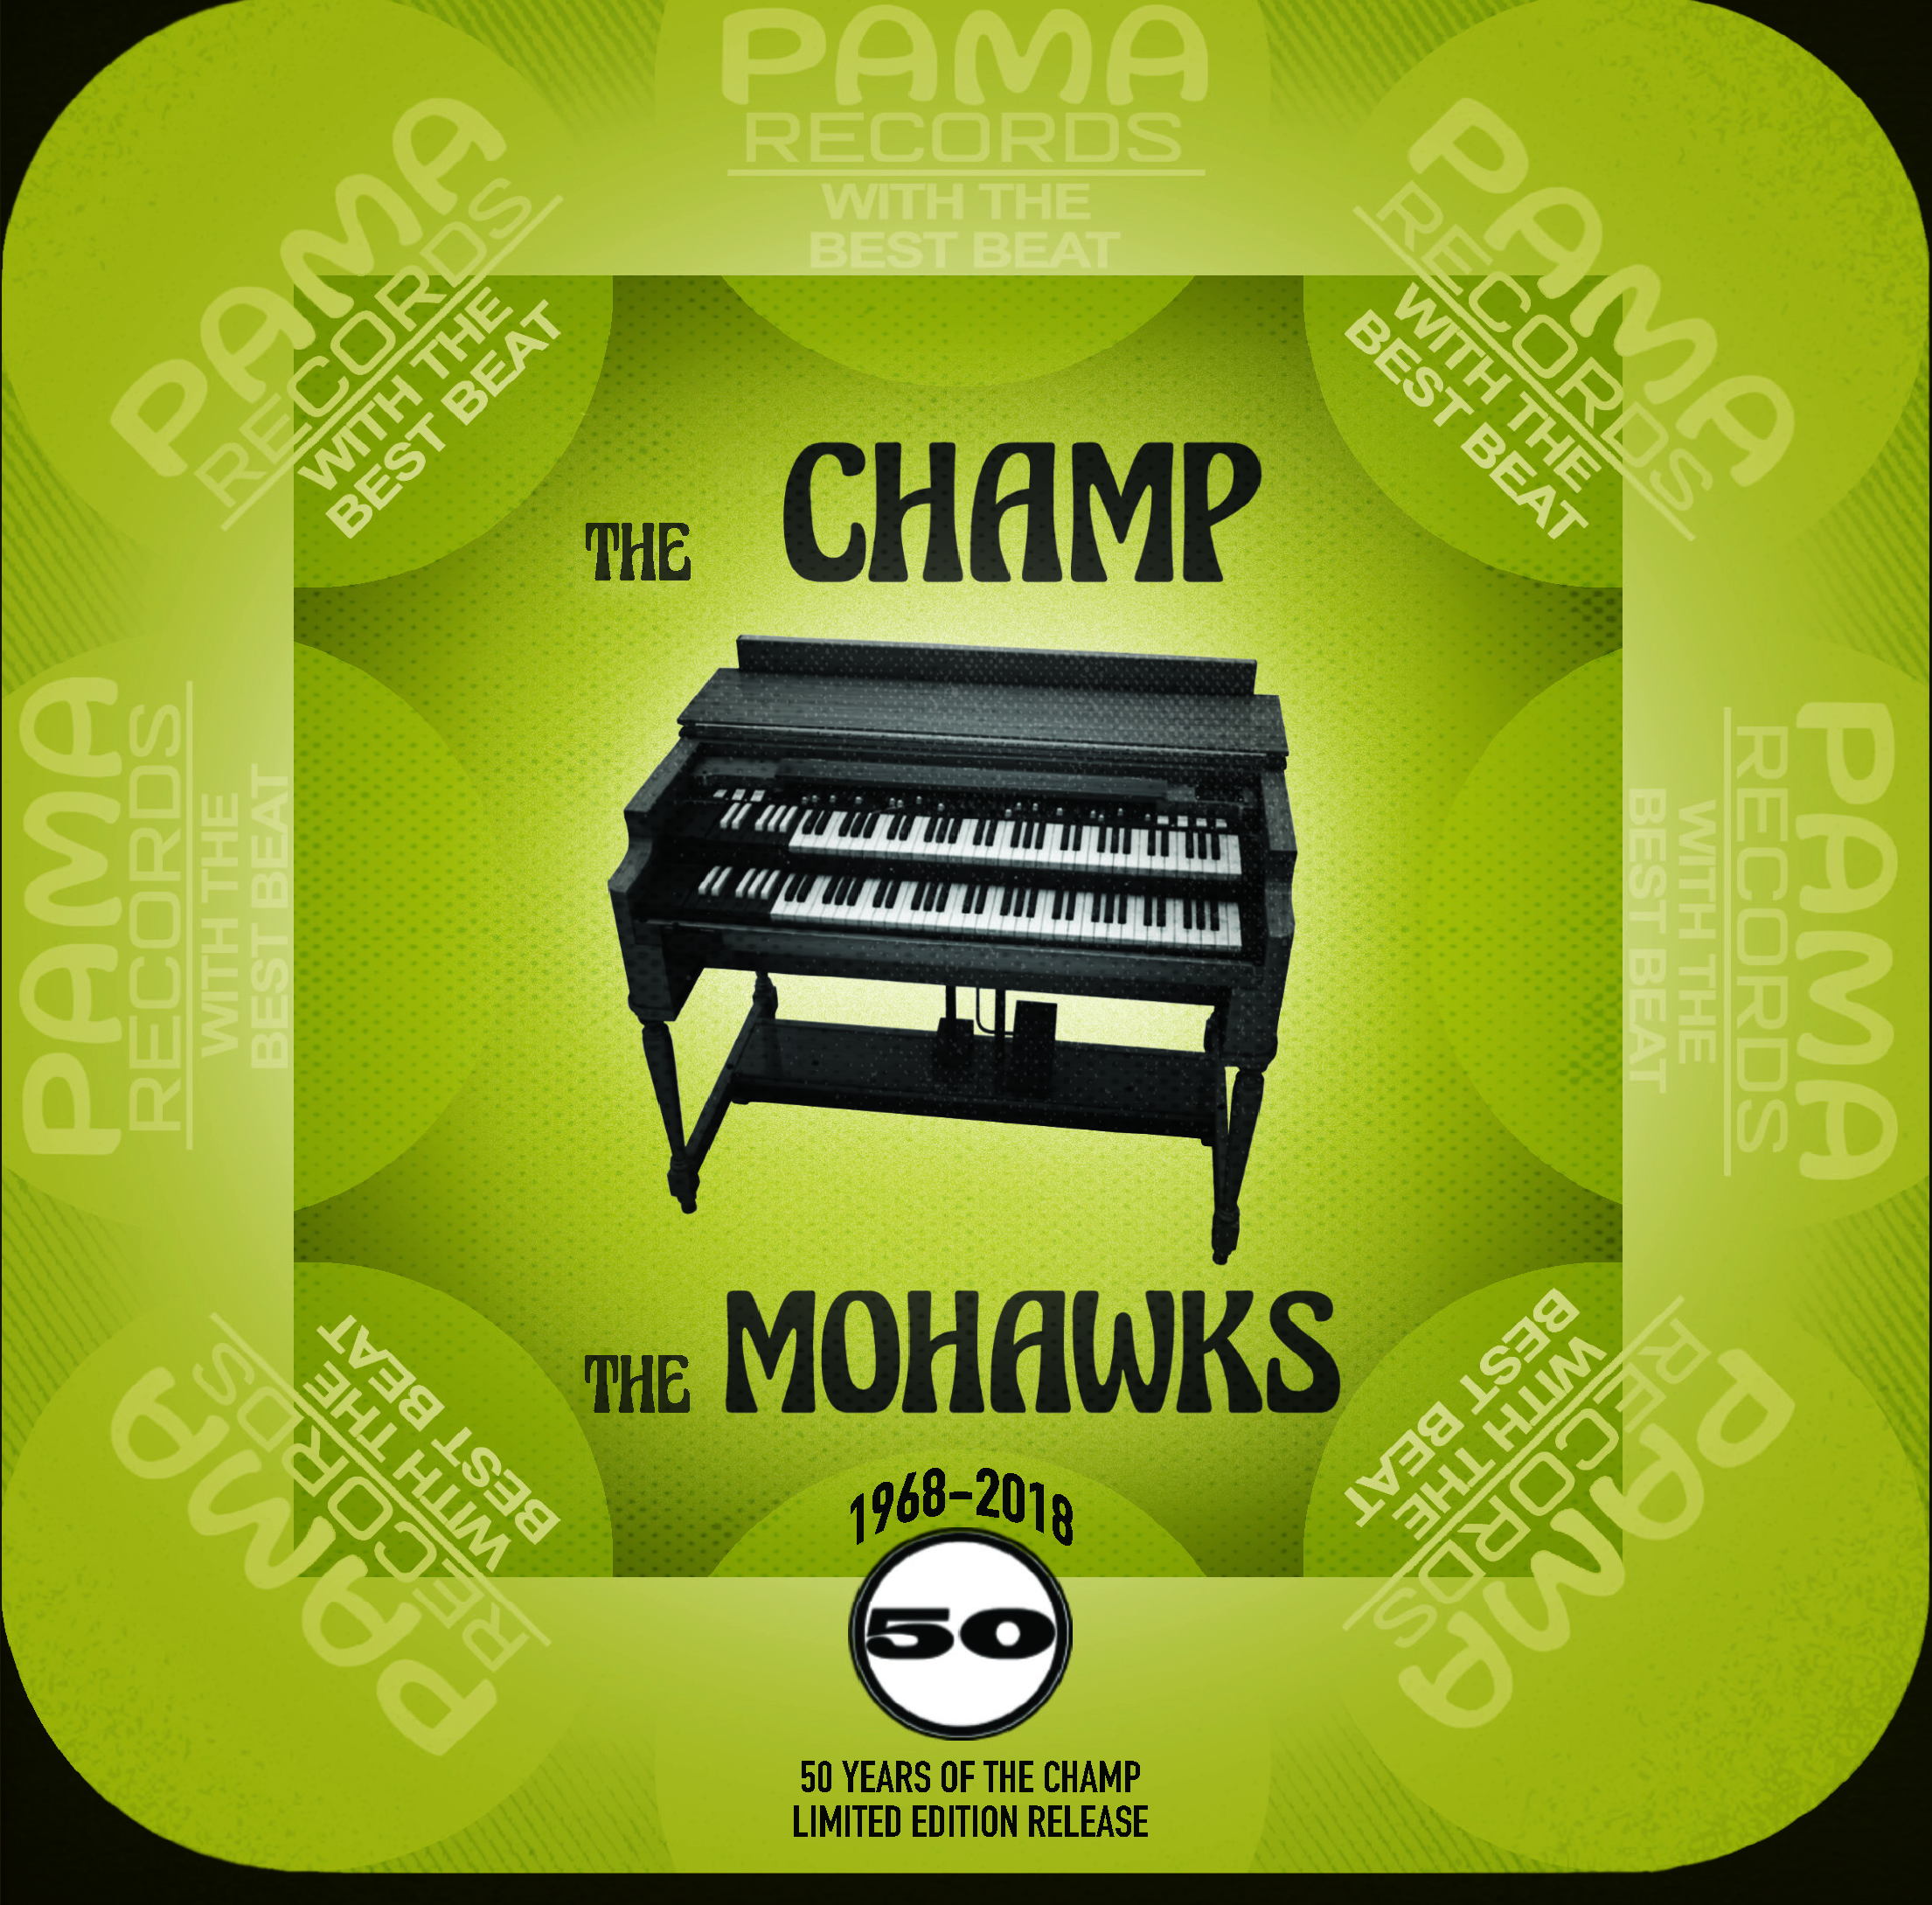 The Mohawks - The Champ (50th Anniversary)